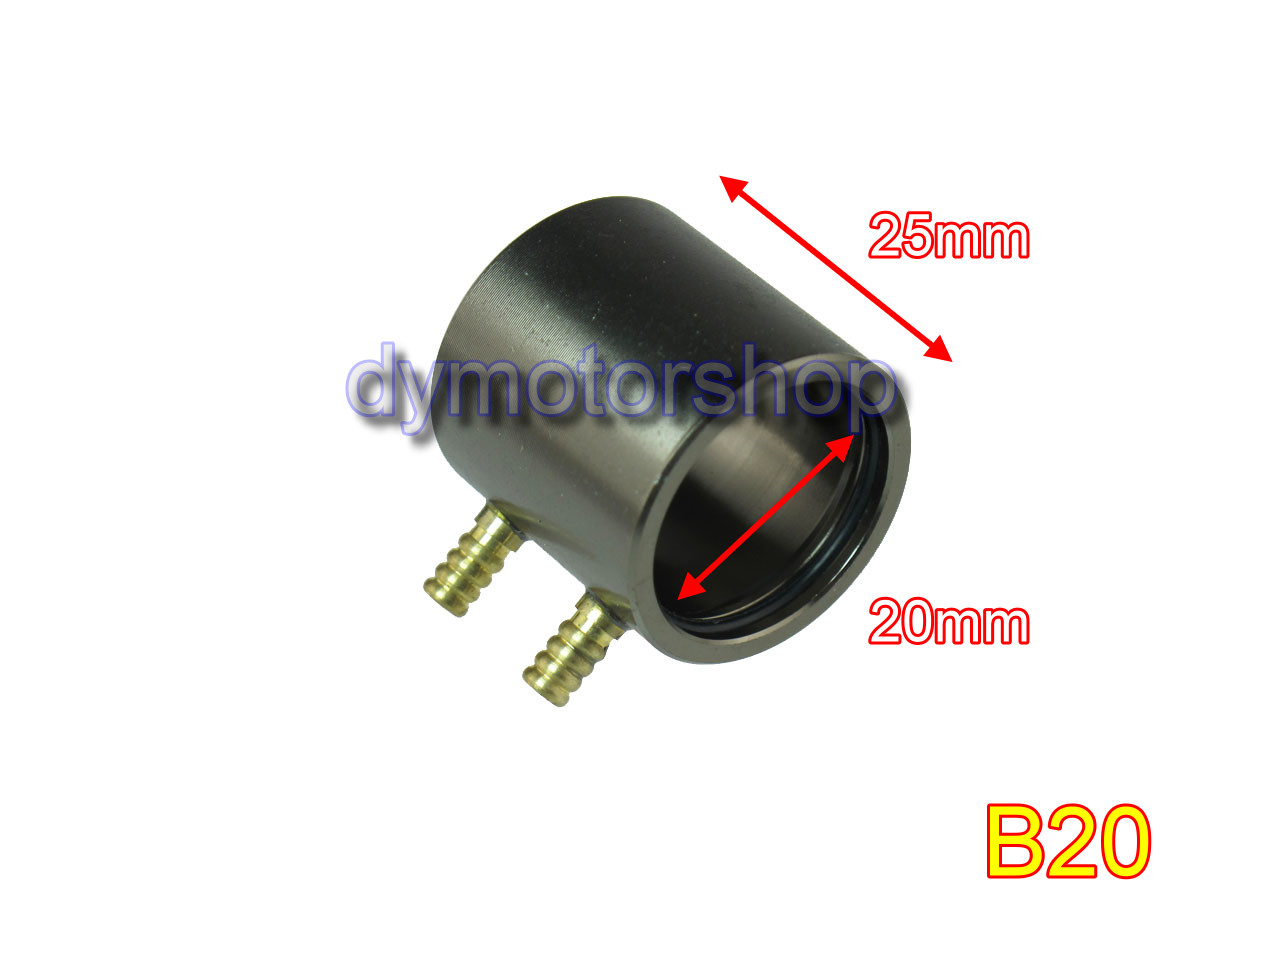 Aluminum Water Cooling Jacket for B20 ID: 20mm Brushless Motor